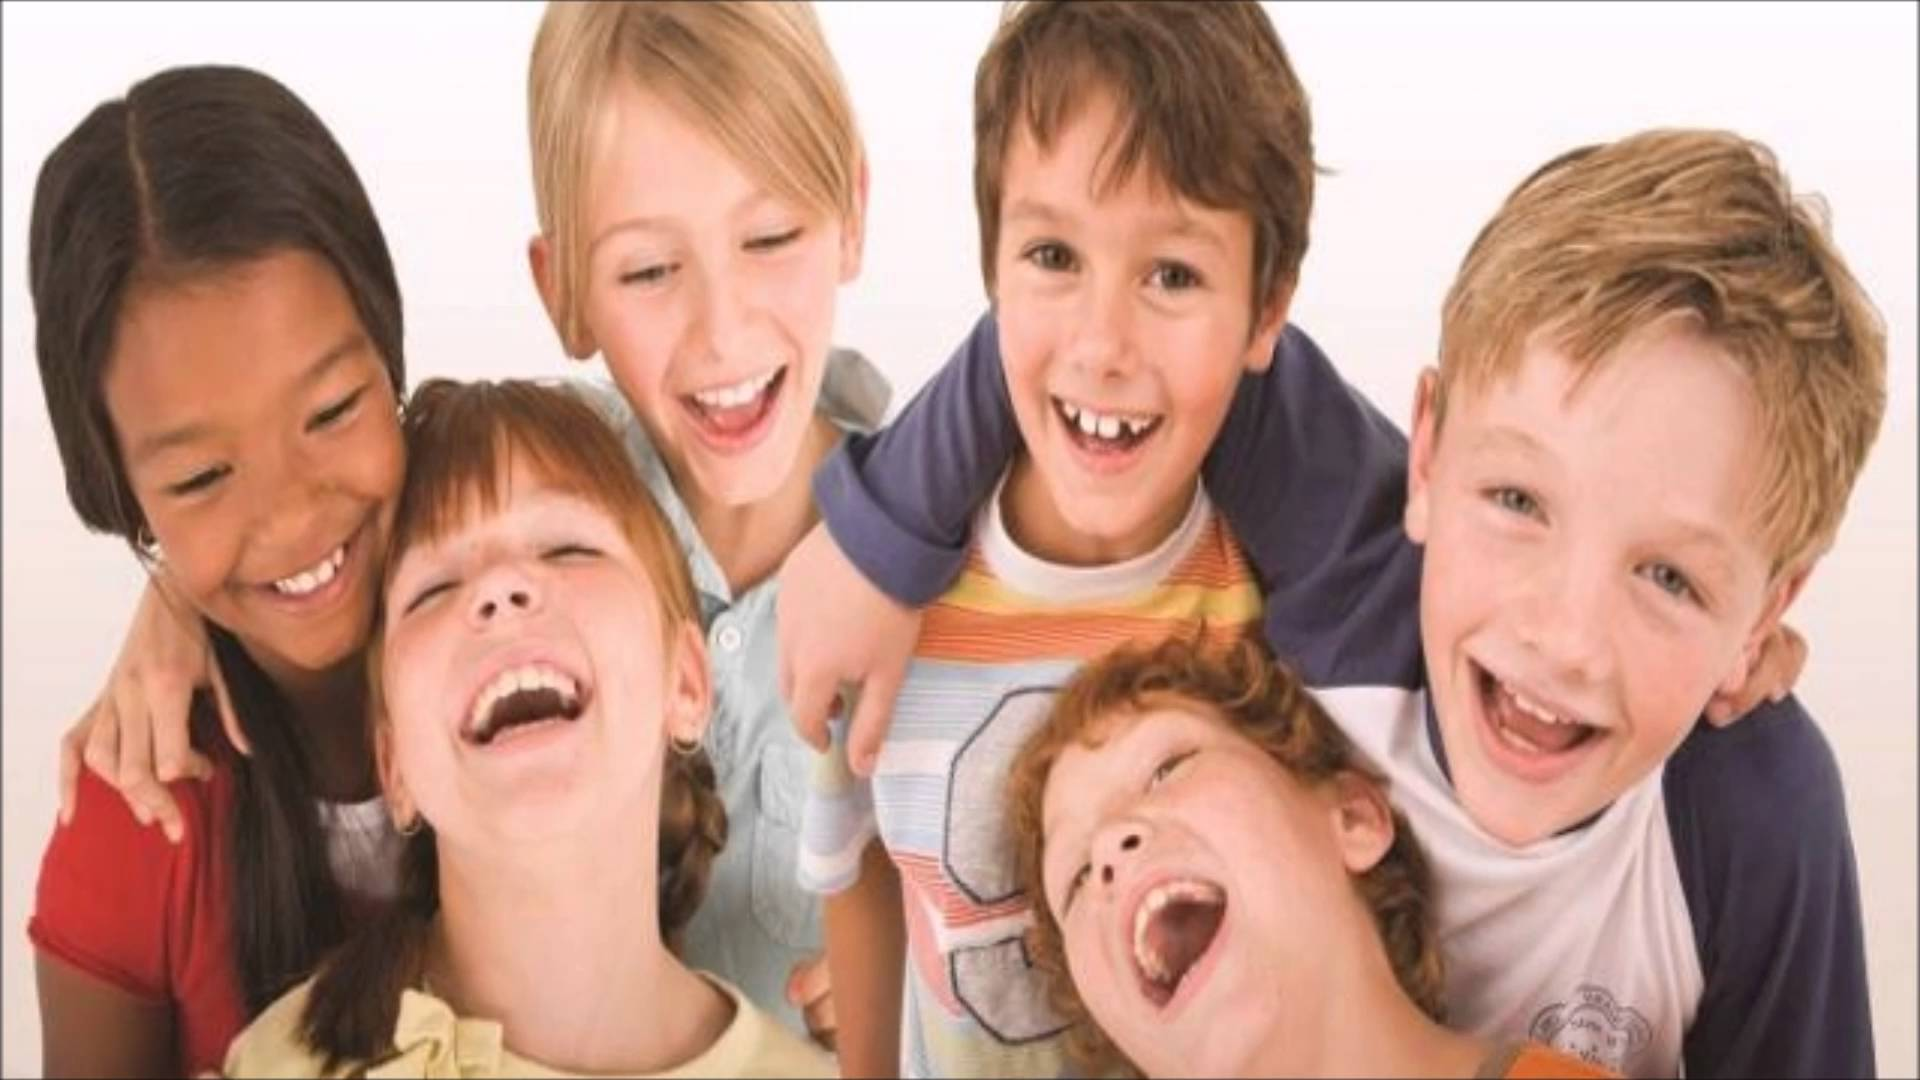 Laughing Effect Kids Sound